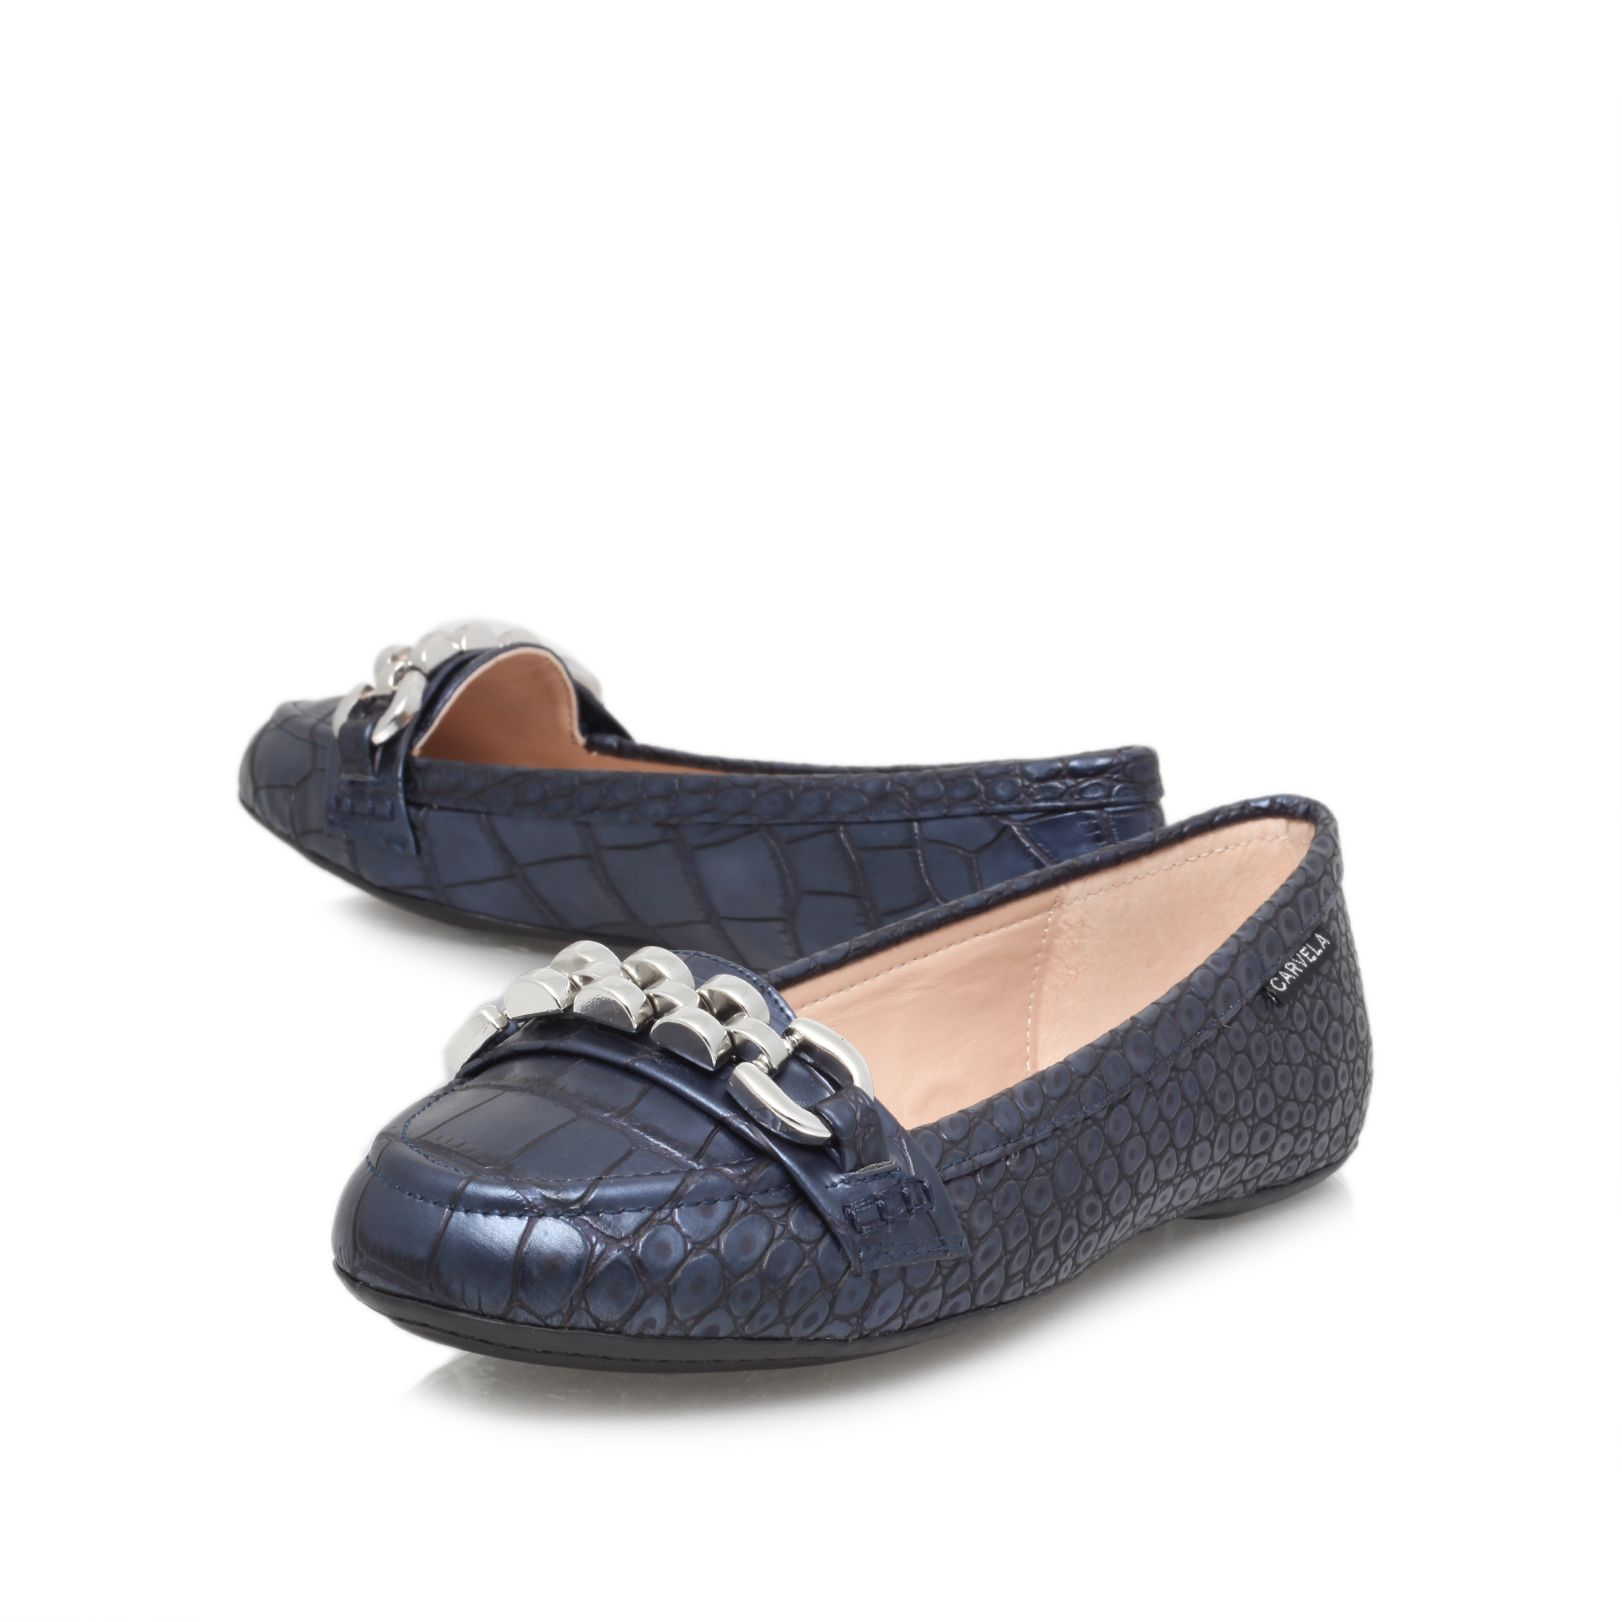 Liberate flat court shoes